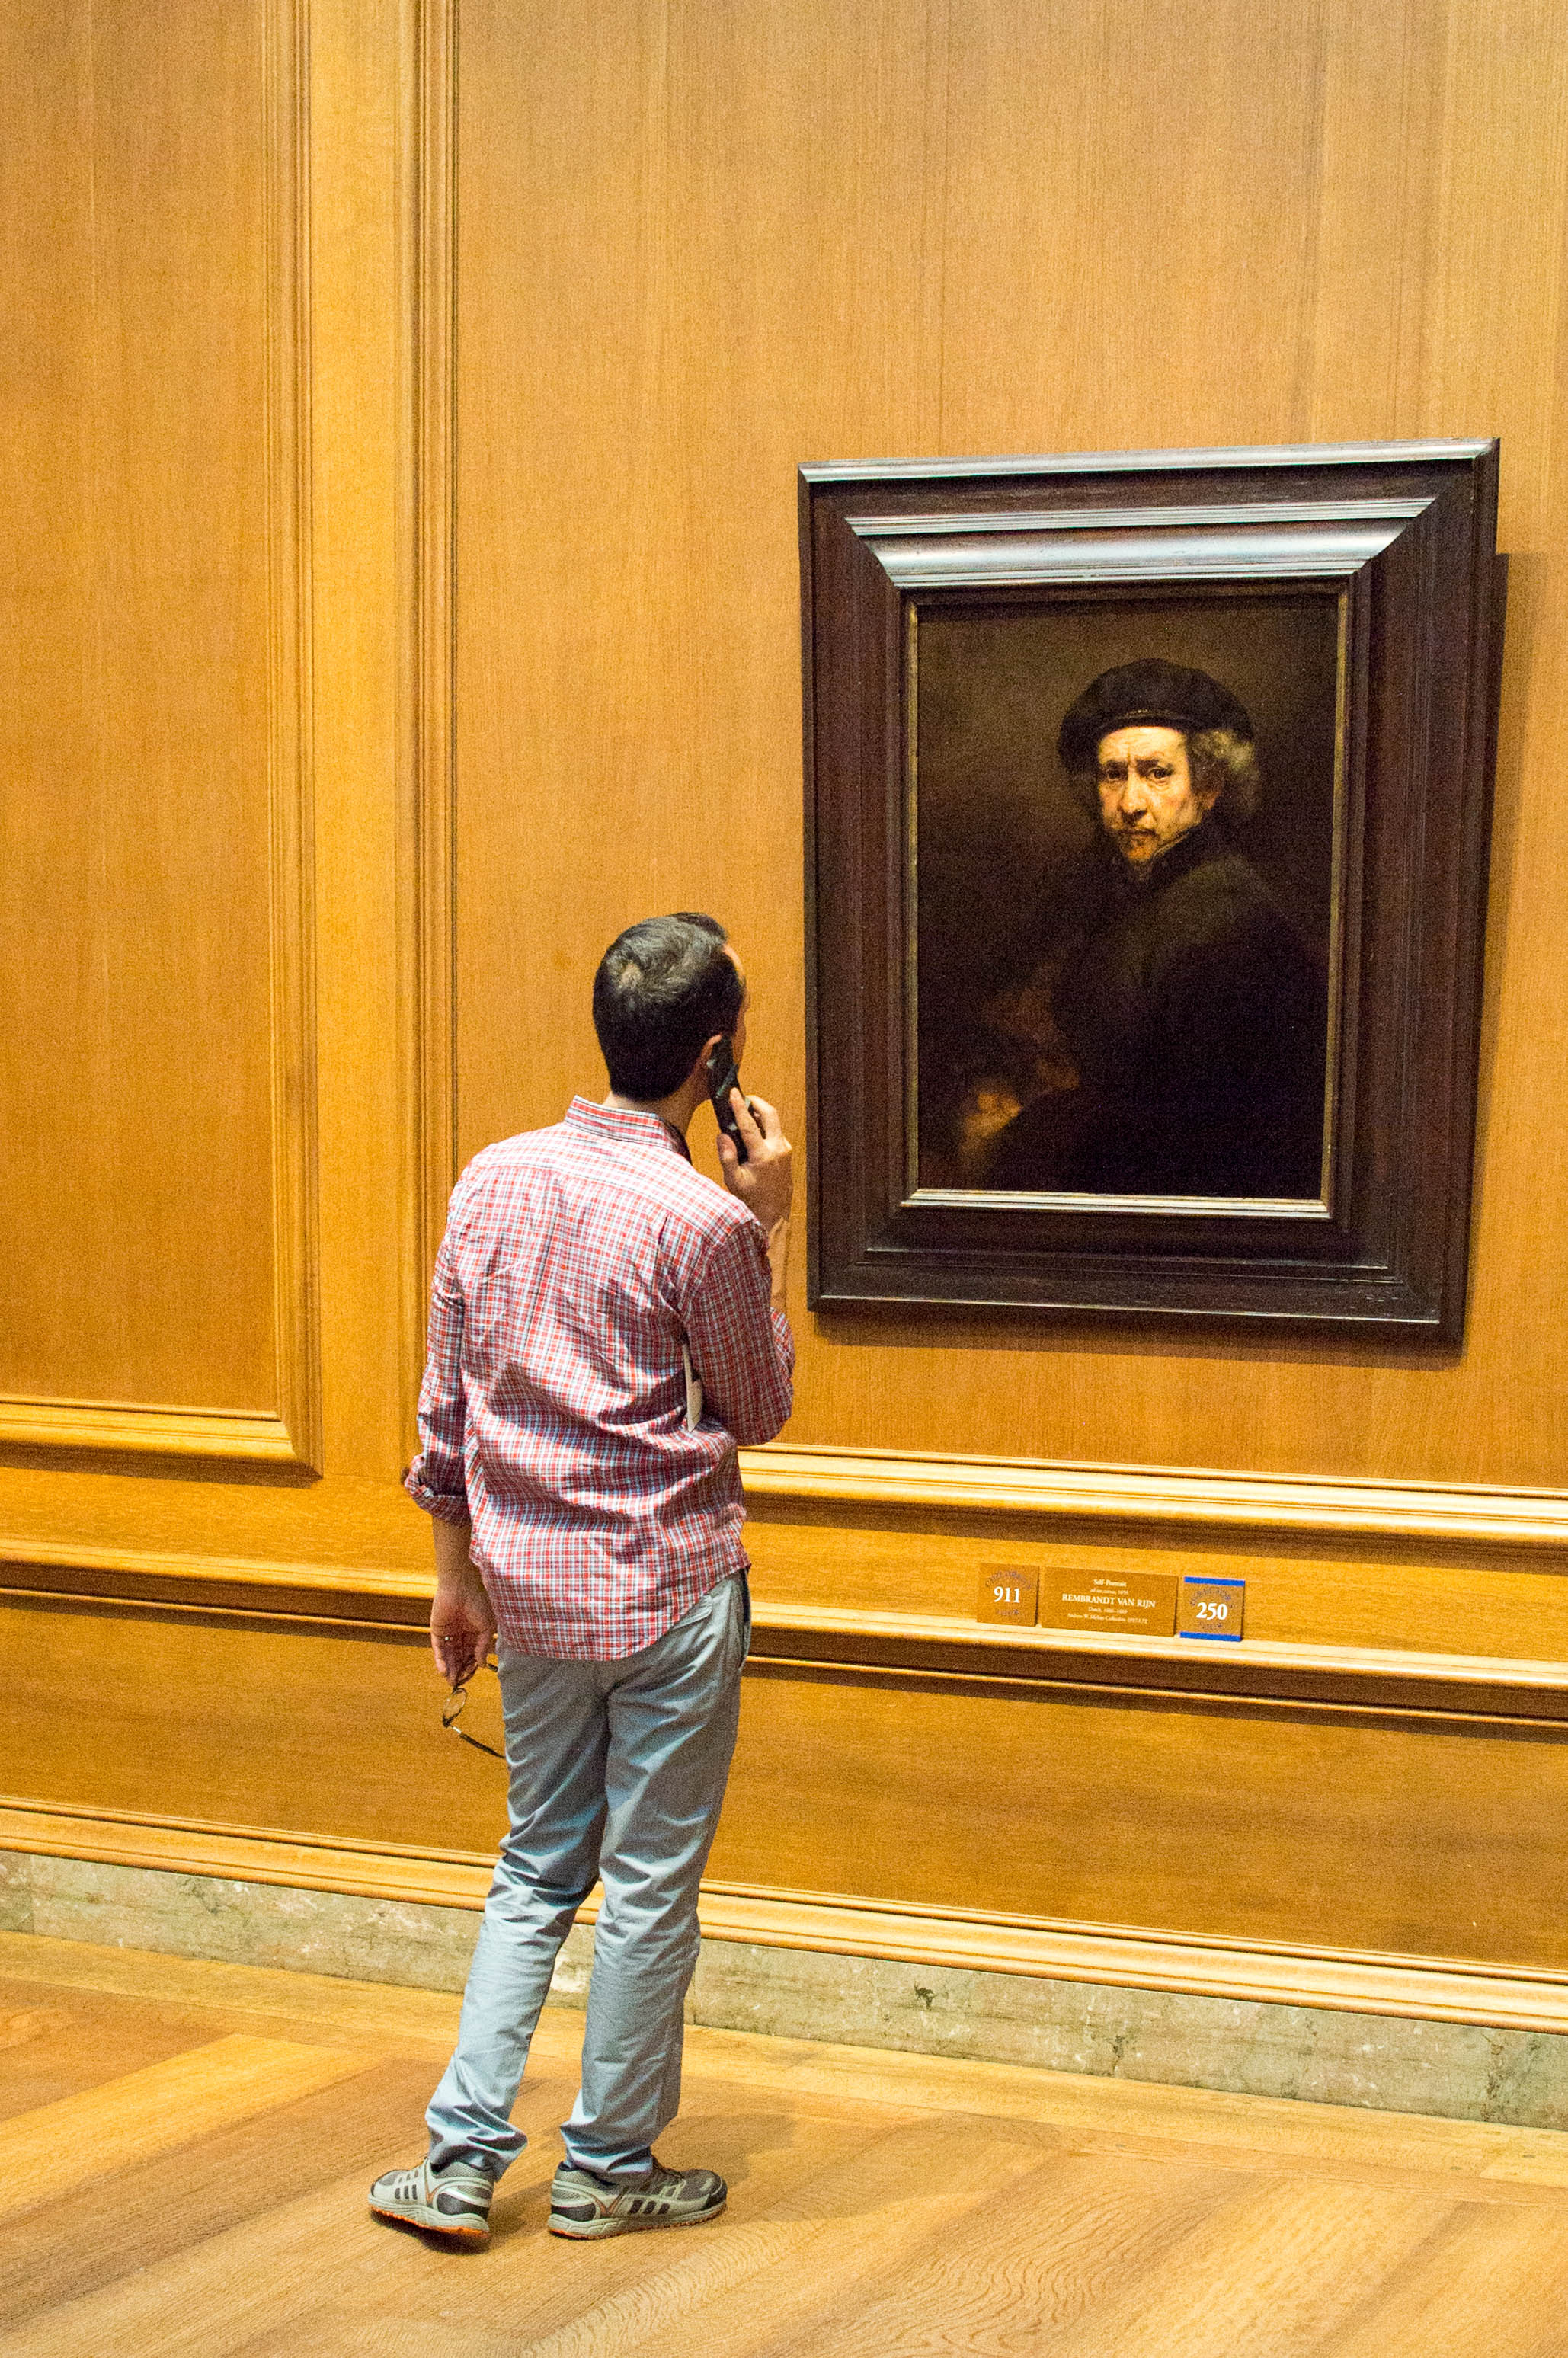 2015-09-14 washington_dc national gallery_rembrandt V1.jpg